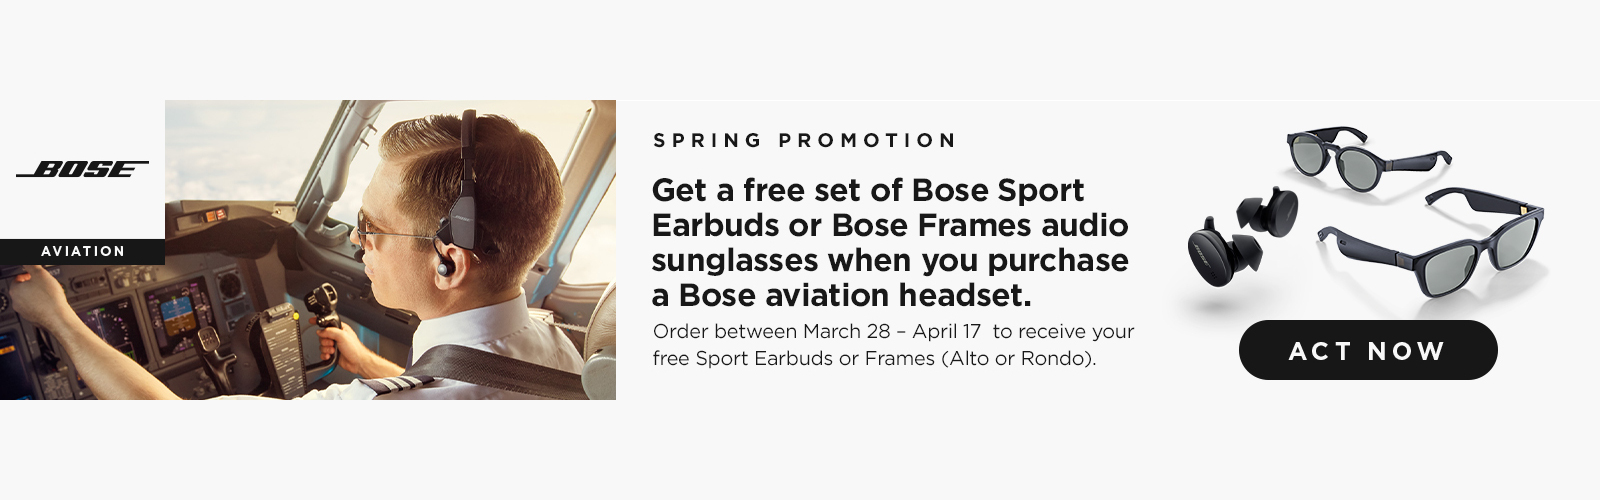 Free sport earbuds with Bose ProFlight Series 2